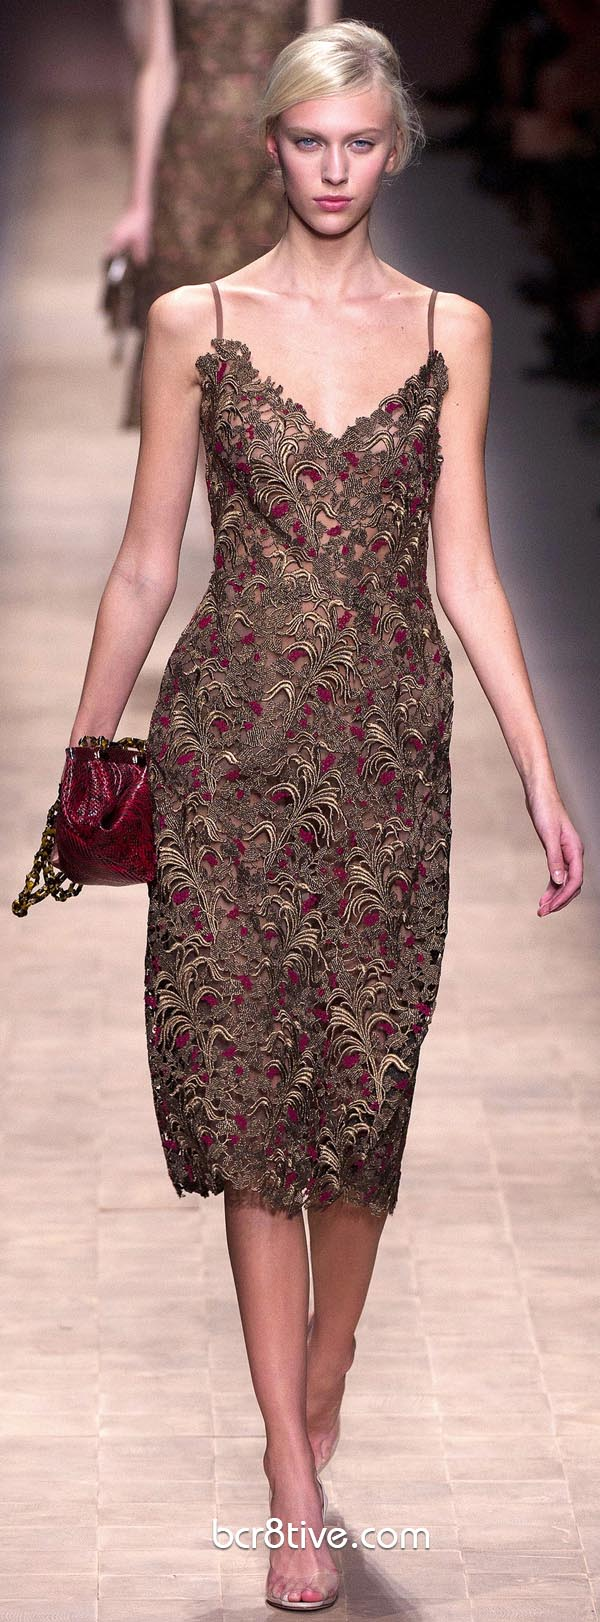 Valentino Spring Summer 2013 Ready To Wear Collection - Dresses & Pants